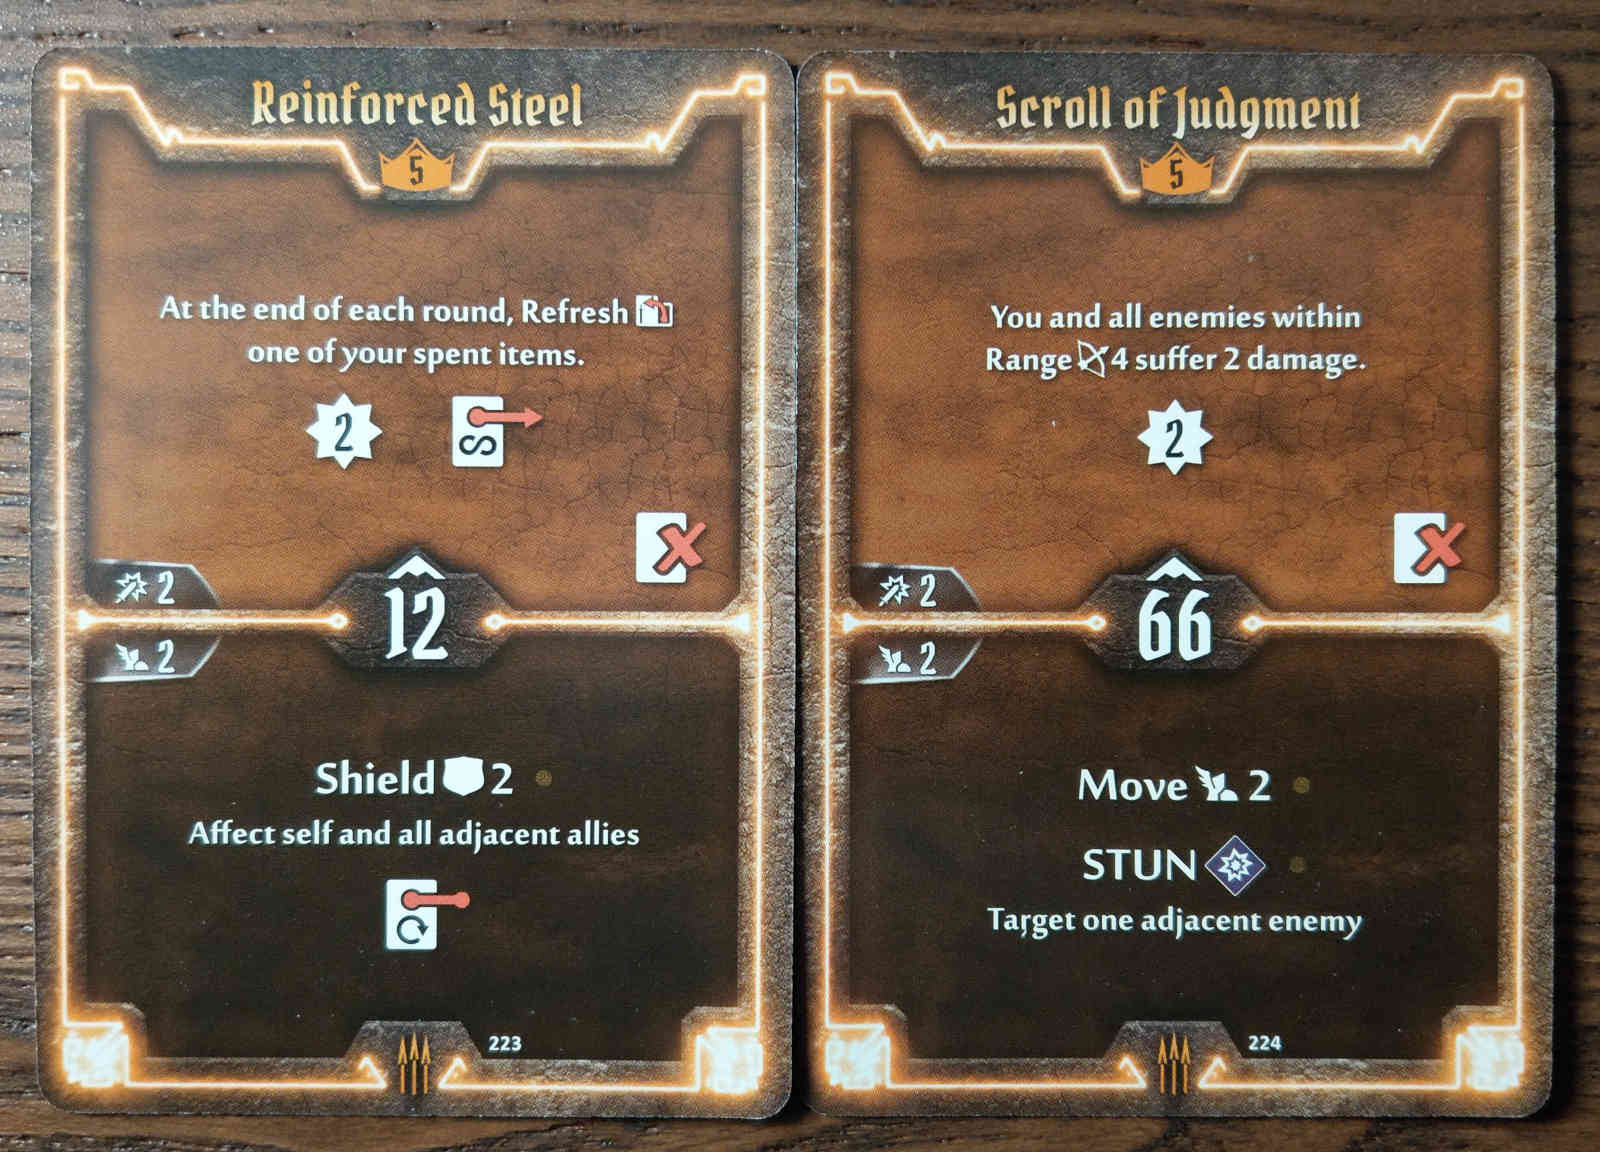 Level 5 Quartermaster cards - Reinforced Steel and Scroll of Judgment